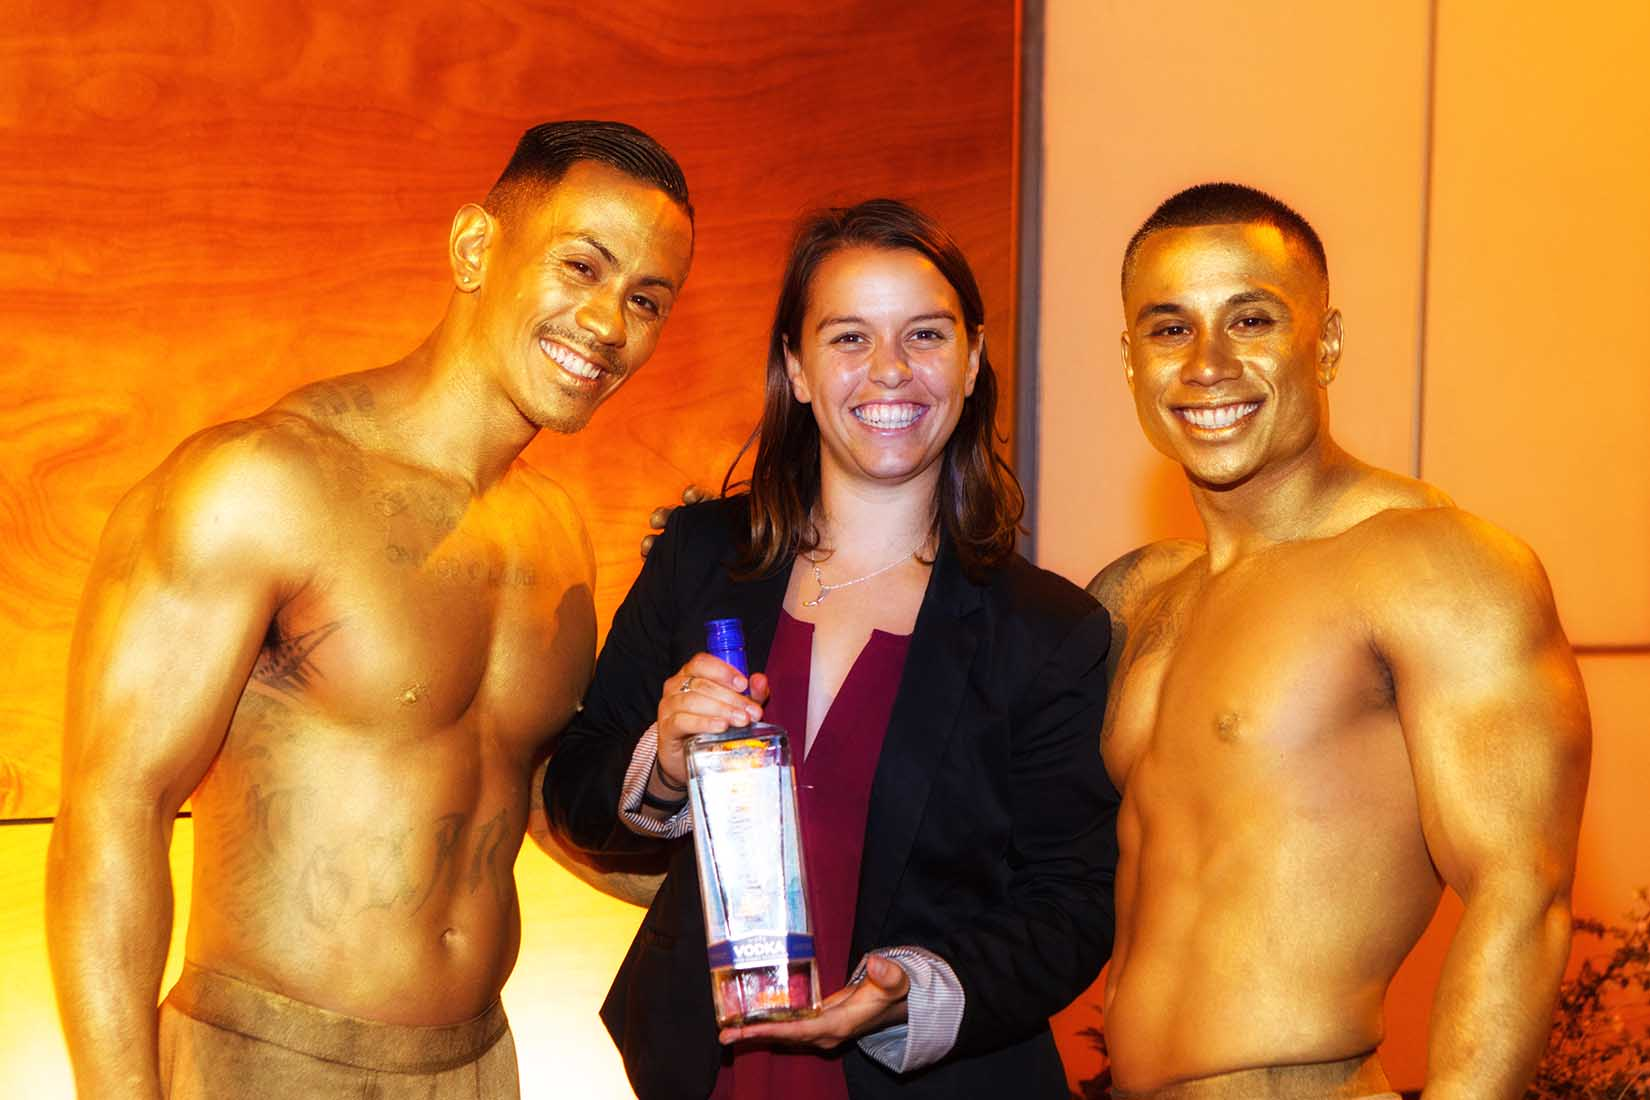 a female bartender posing with models